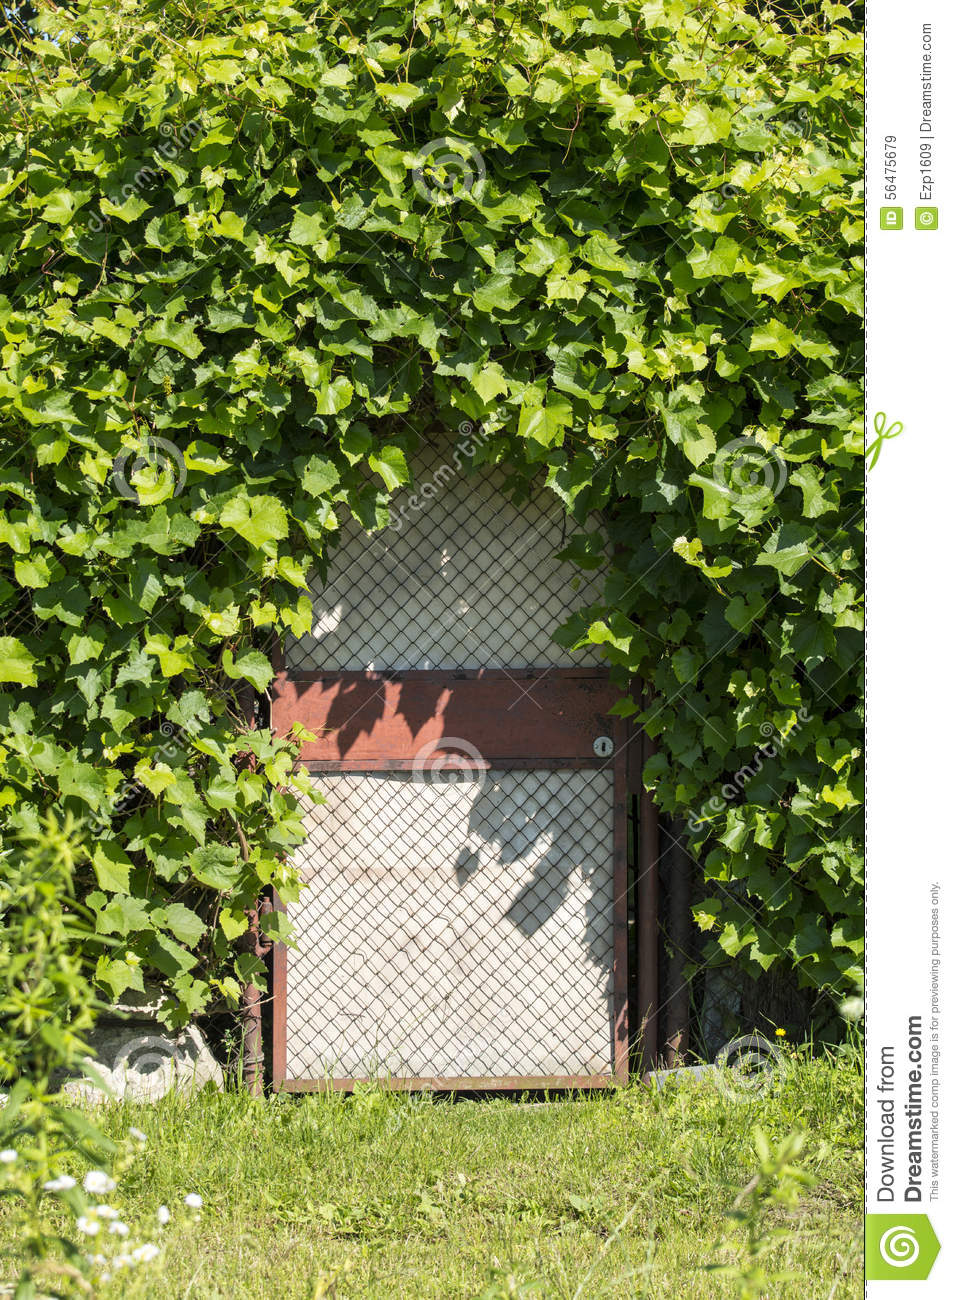 la porte au jardin secret photo stock image 56475679